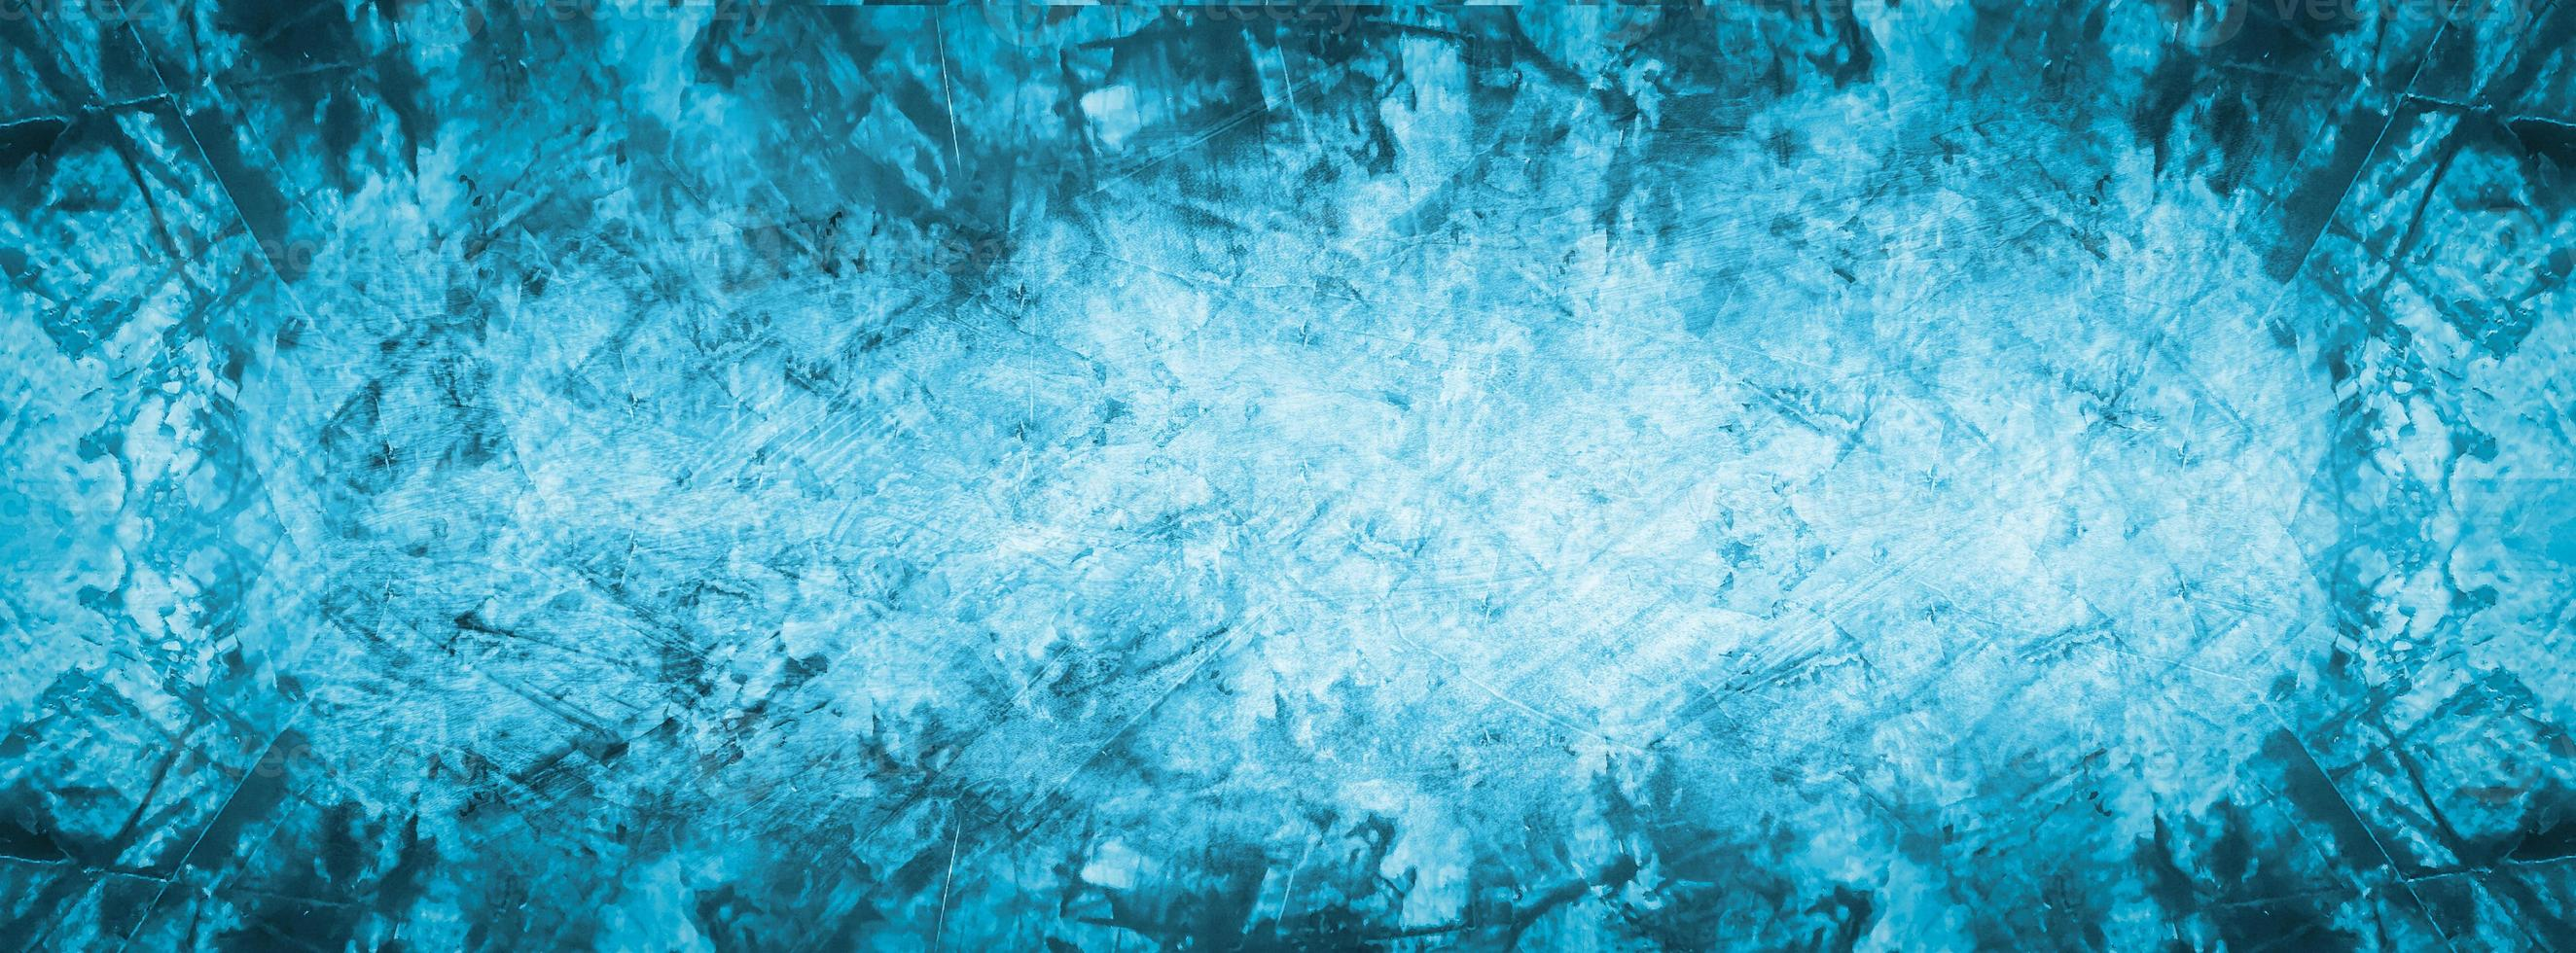 Blue background with texture photo